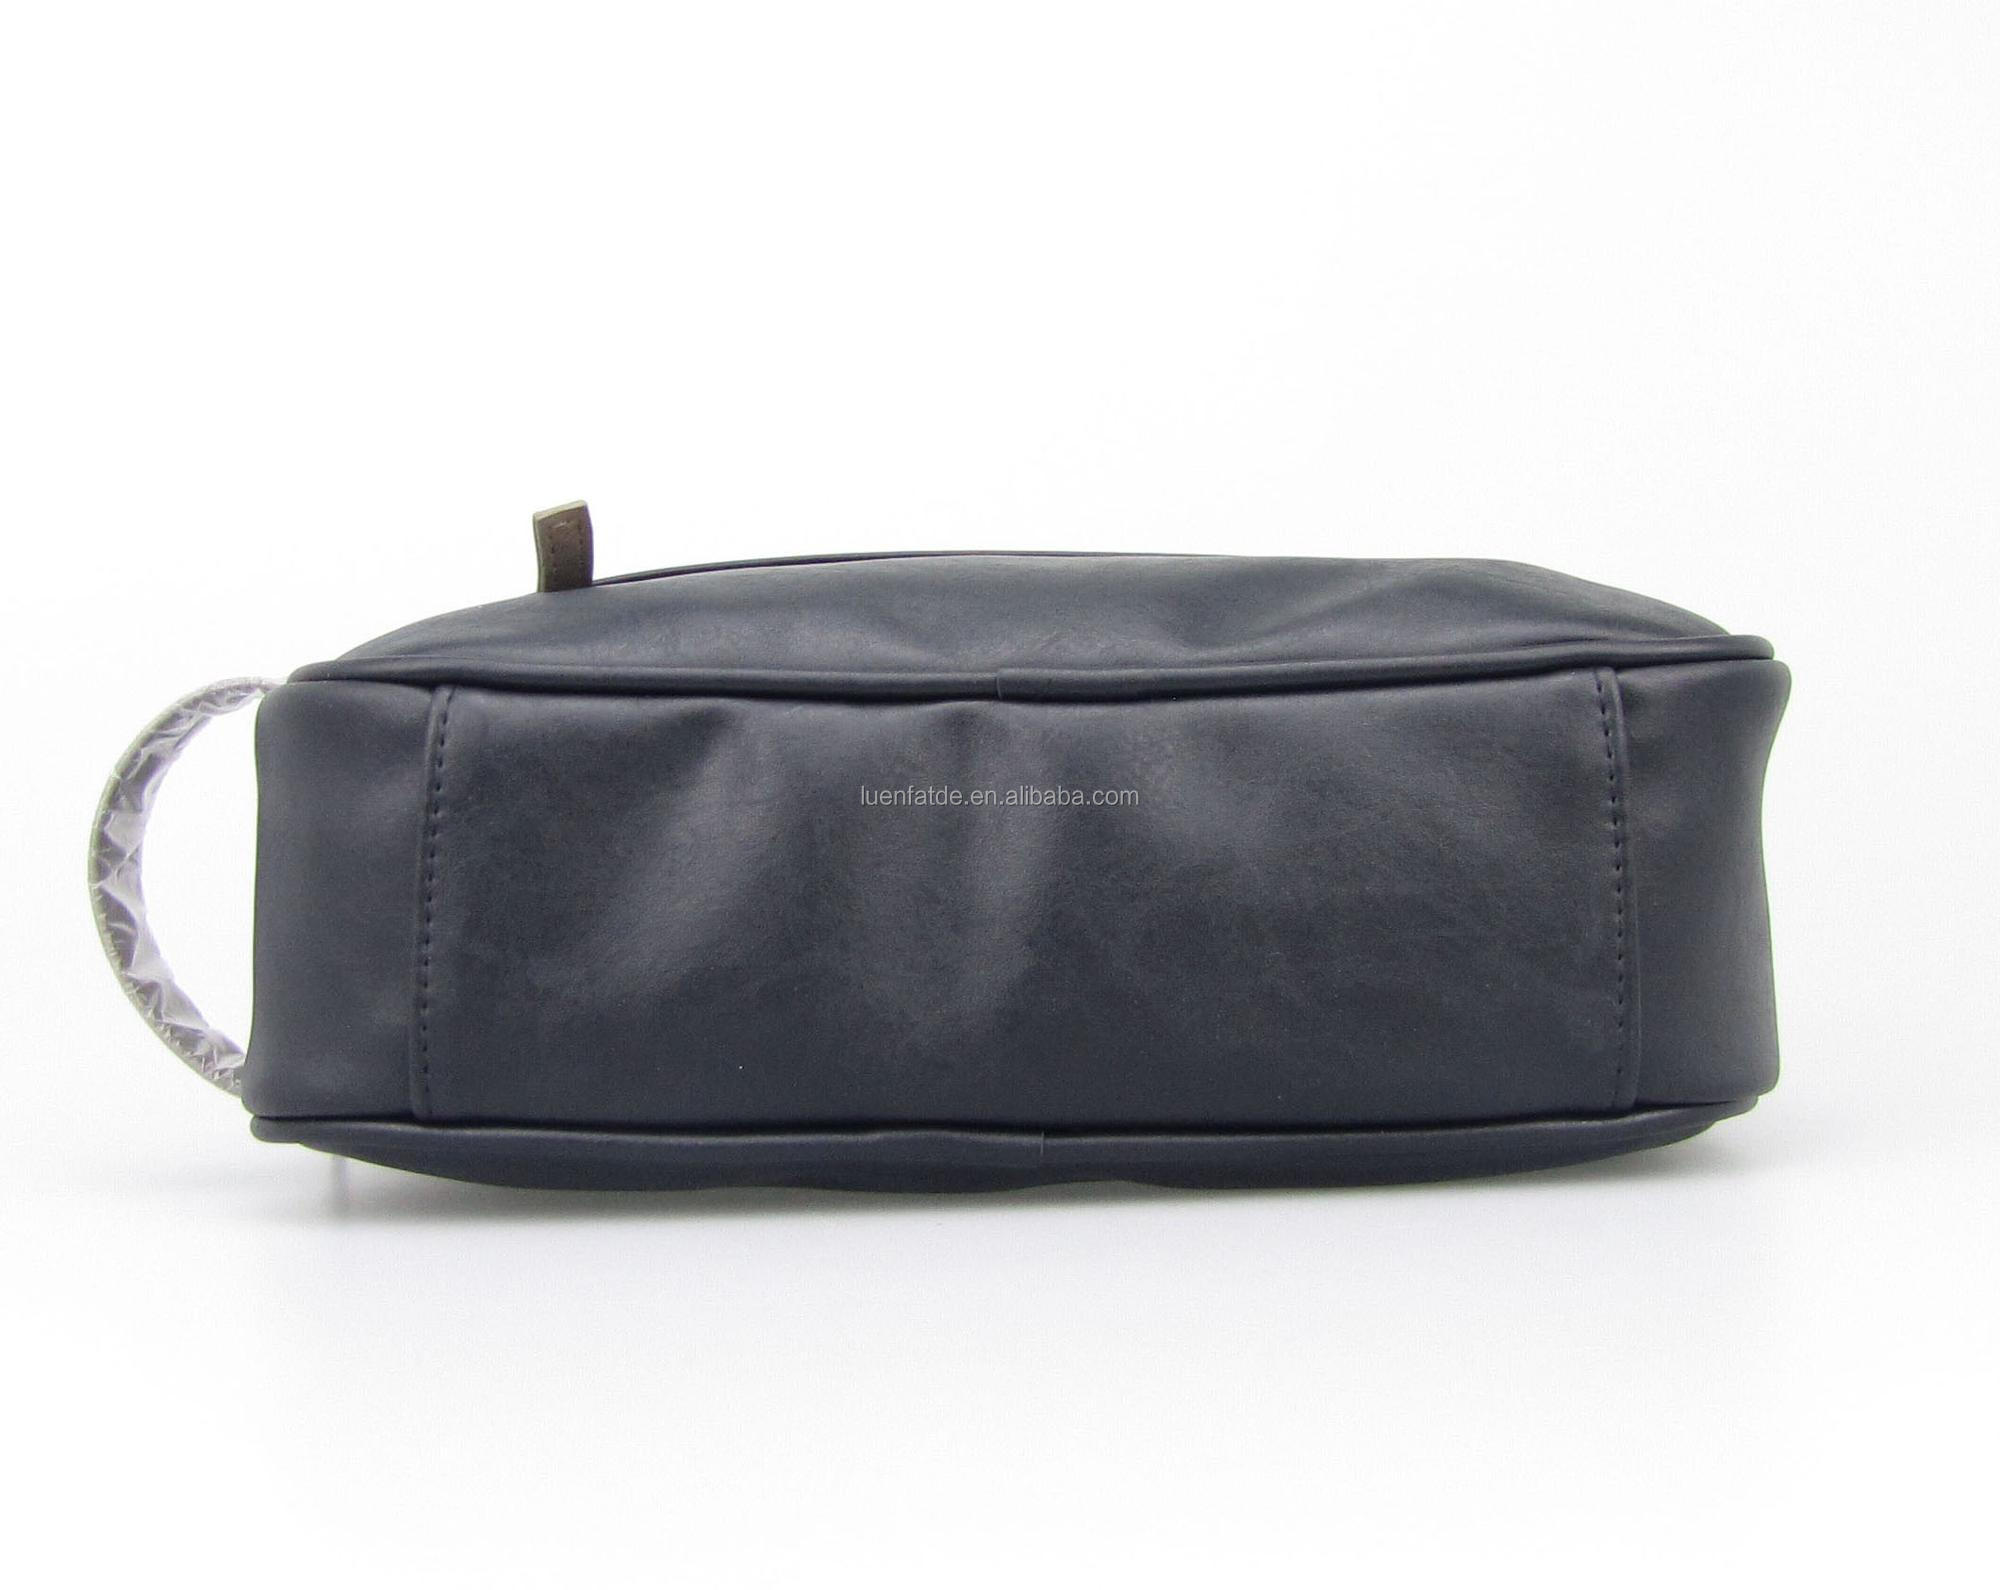 High Quality PU Leather Men Cosmetic Bag Travel Makeup Bag zipper waterproof